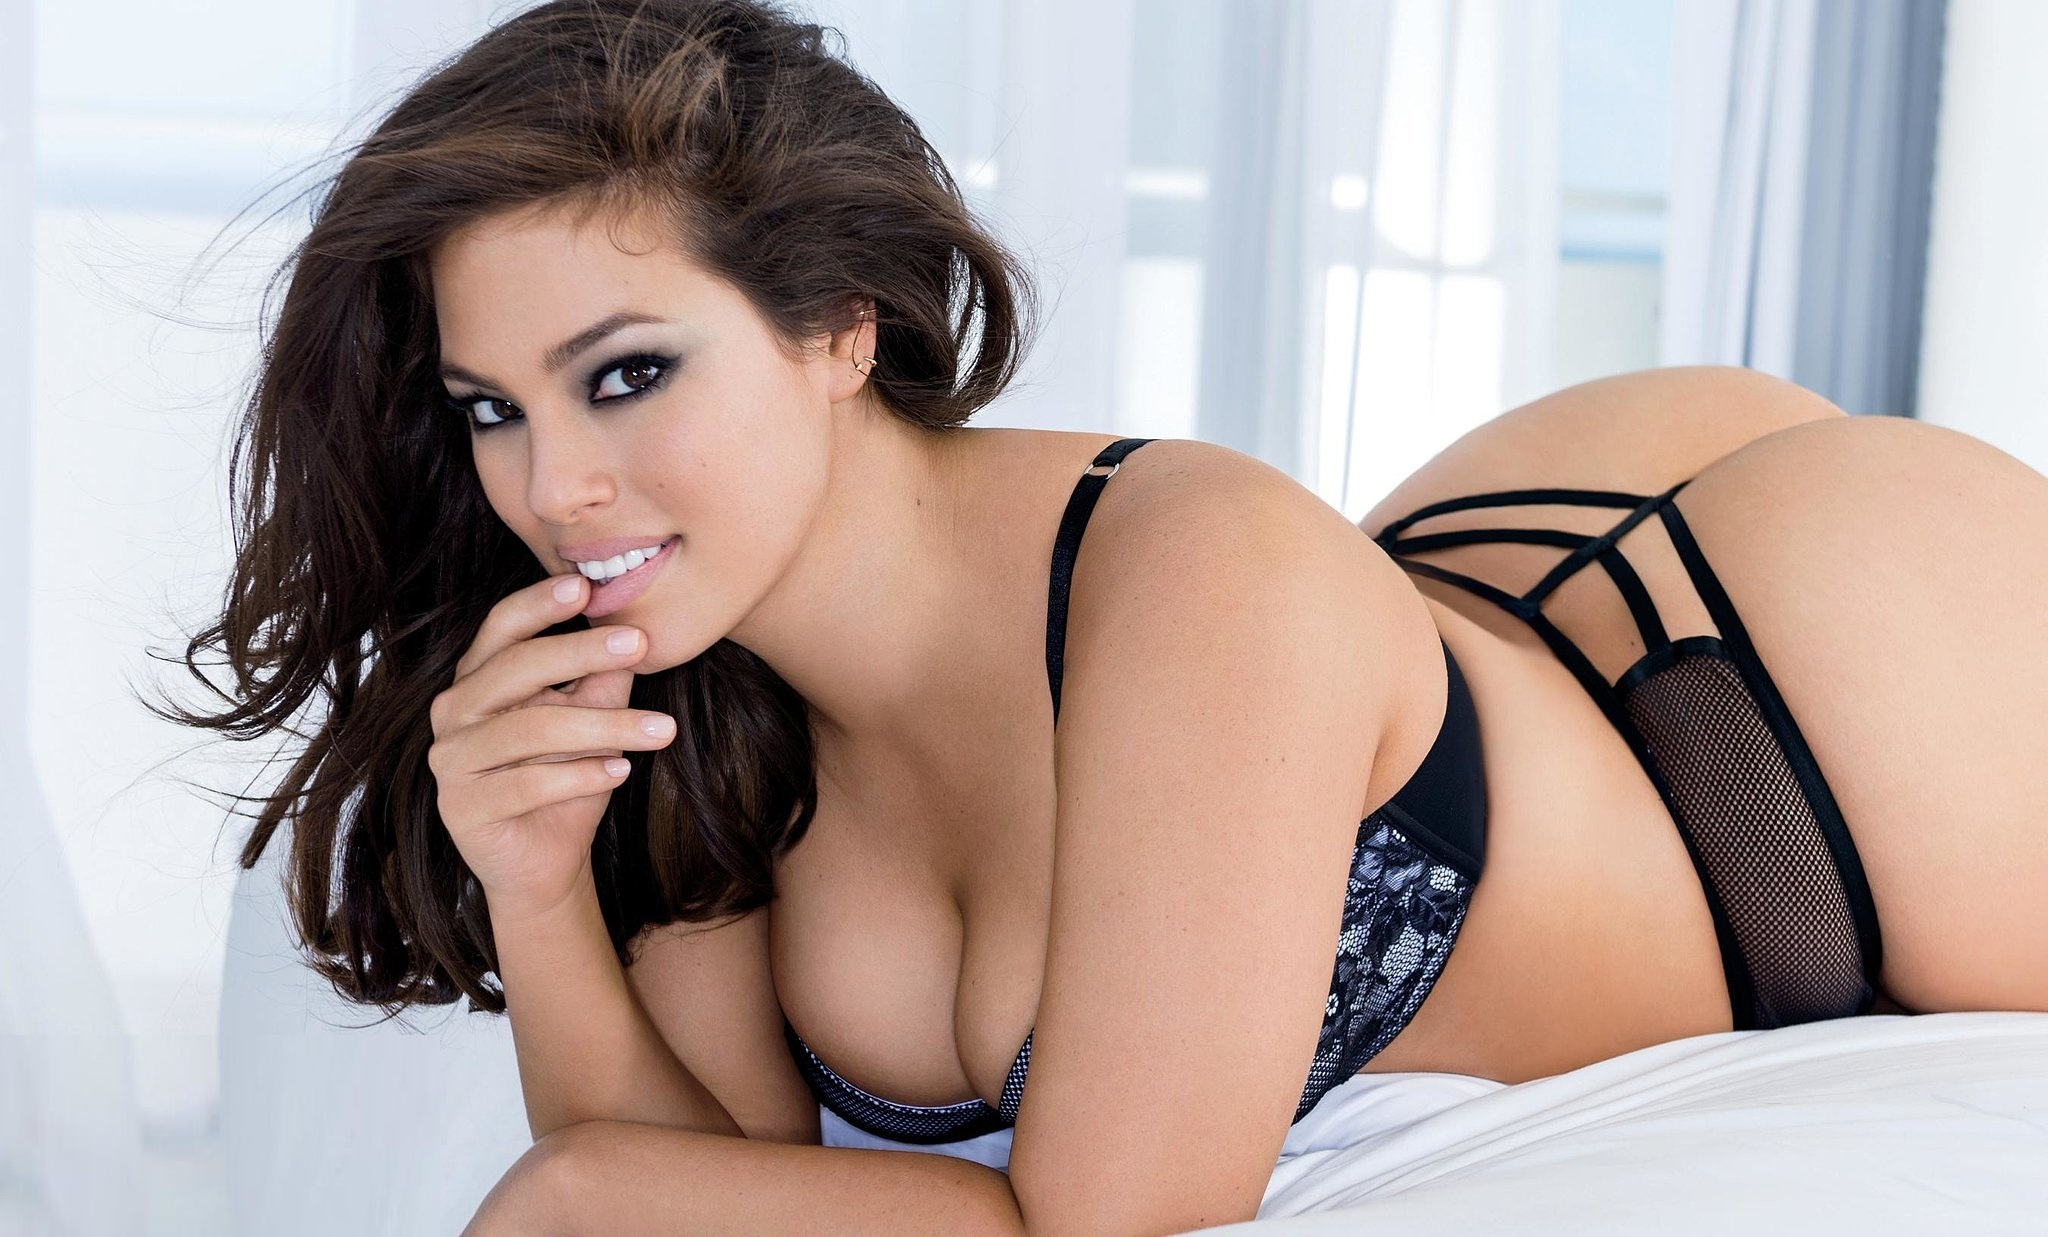 Model Ashley Graham hot photoshoot for British Vogue magazine